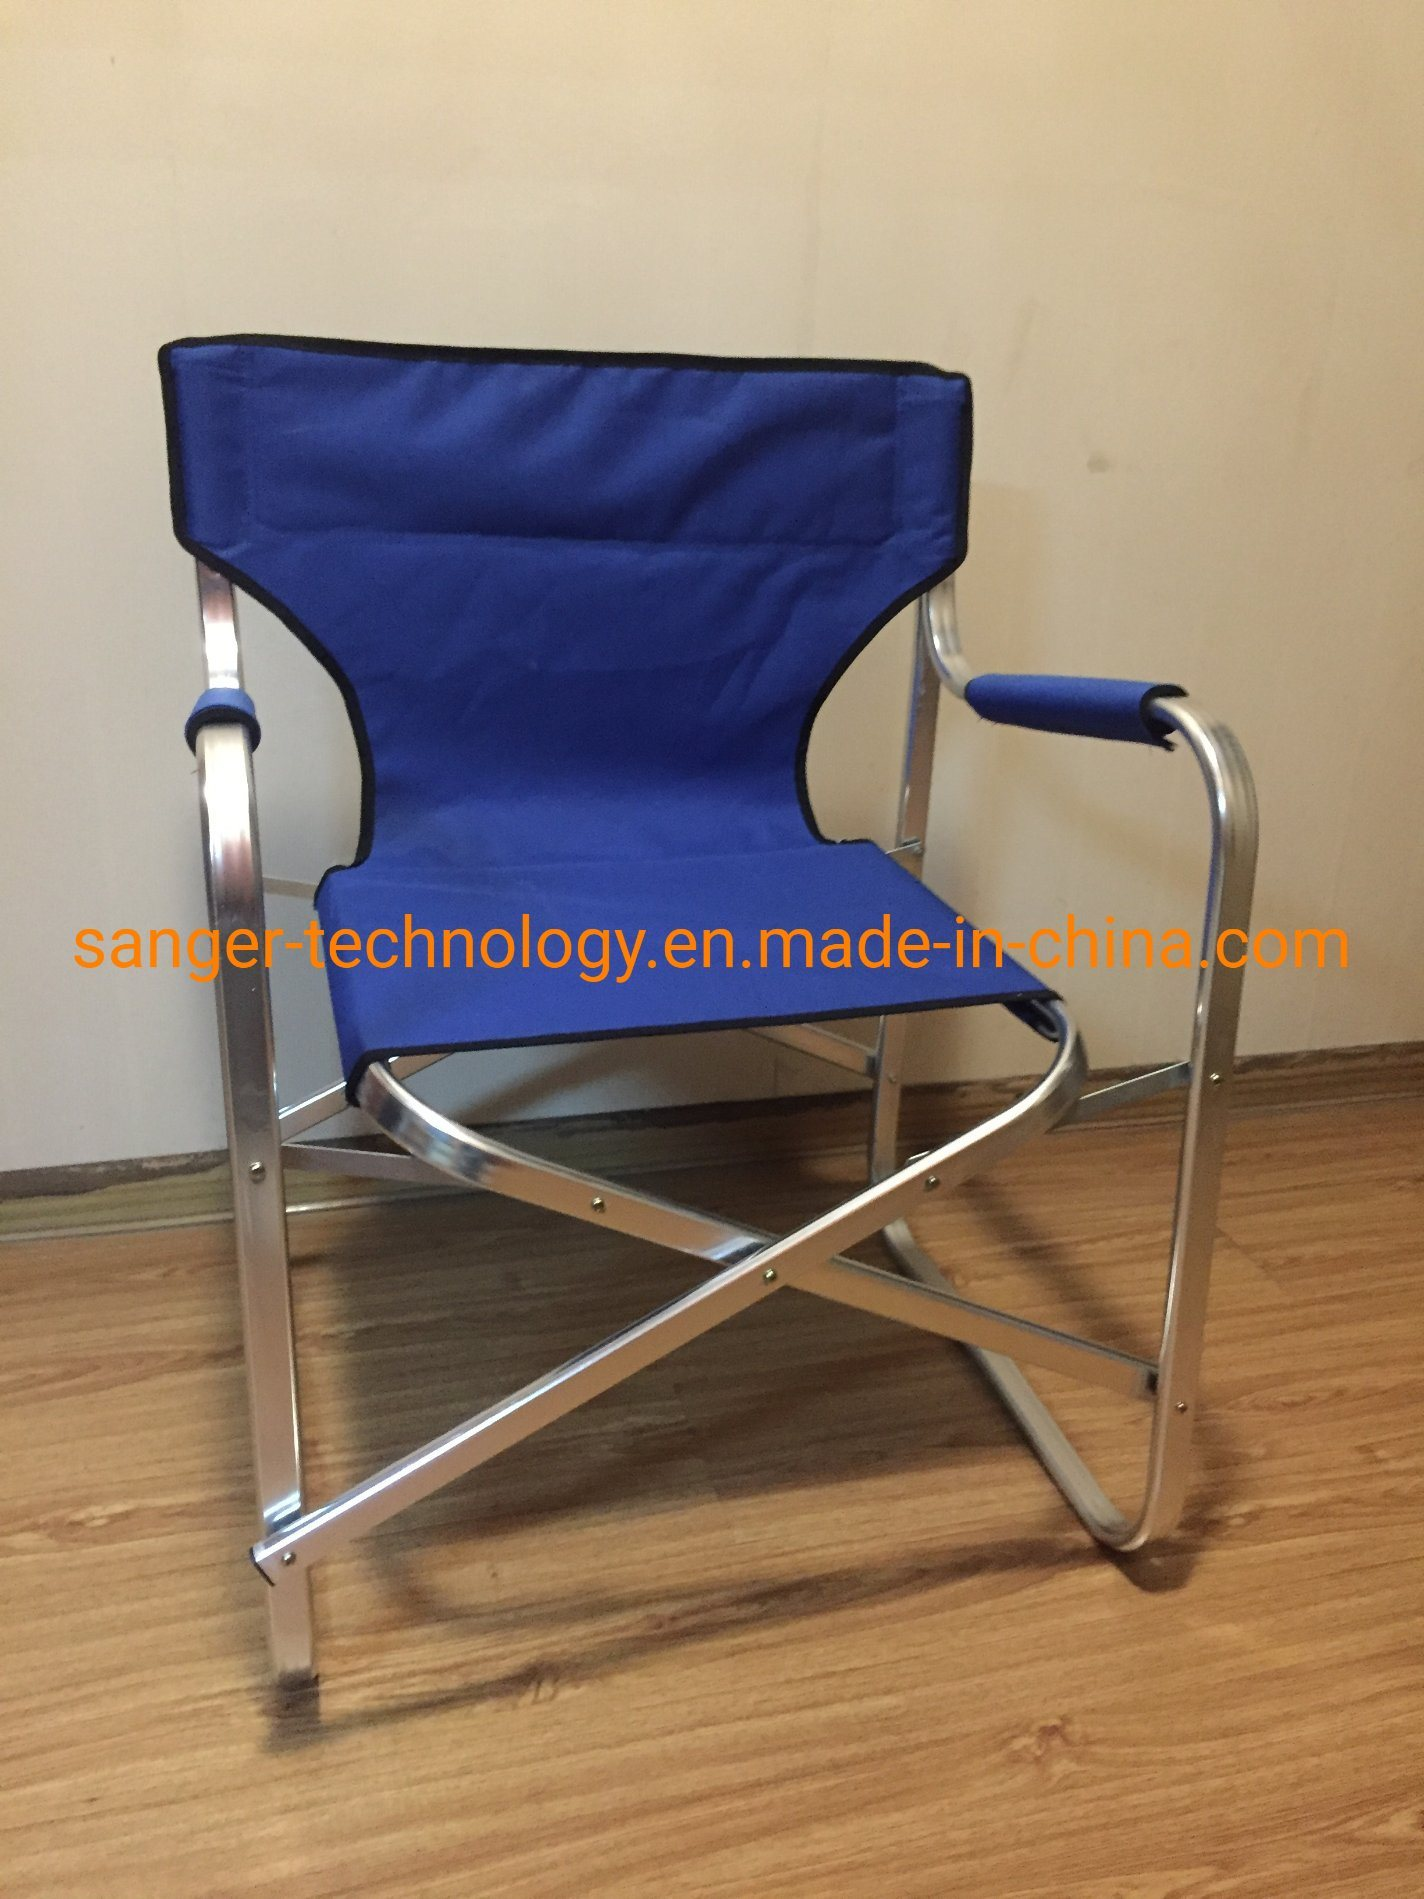 Miraculous China Seating Fabric Changeable Director Chair Aluminum Uwap Interior Chair Design Uwaporg